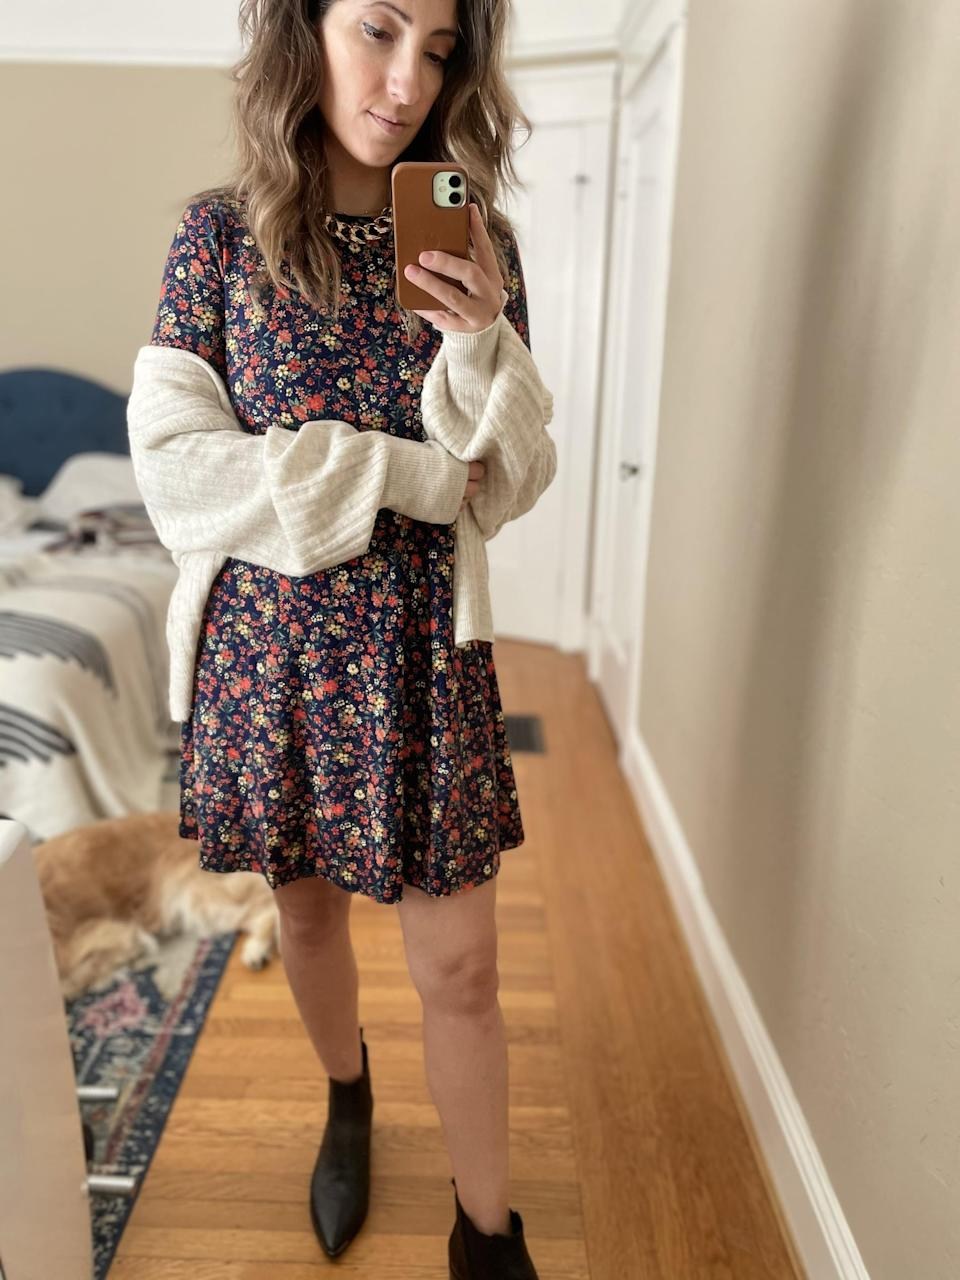 "<p><strong>The item:</strong> <span>Floral-Print Jersey-Knit Swing Dress</span> ($15, originally $30) </p> <p><strong>What our editor said:</strong> ""It's flowy and flattering, which makes it easy to toss on. It feels more like a long-sleeved shirt than anything, and it just moves so nicely. I wore it with a cream-colored cardigan sweater and black ankle boots, but to head outside I can easily toss on leggings to make it warmer."" - RB</p> <p>If you want to read more, here is the <a href=""https://www.popsugar.com/fashion/long-sleeve-floral-dress-at-old-navy-editor-review-48056334:"" class=""link rapid-noclick-resp"" rel=""nofollow noopener"" target=""_blank"" data-ylk=""slk:complete review"">complete review</a>.</p>"